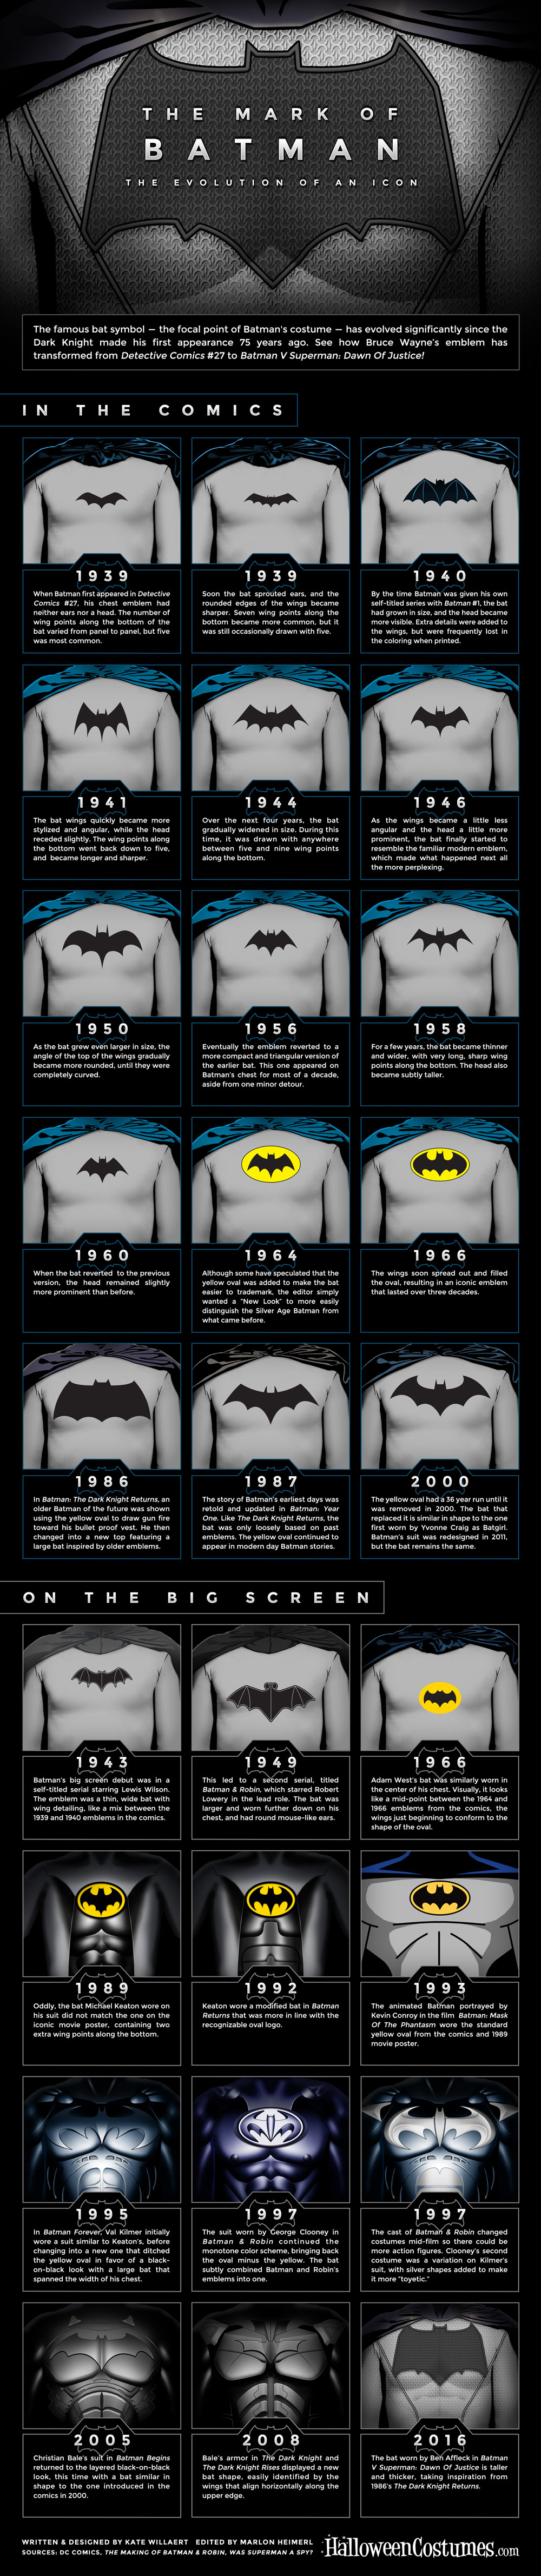 The History of the Batman Logo by HalloweenCostumes.com